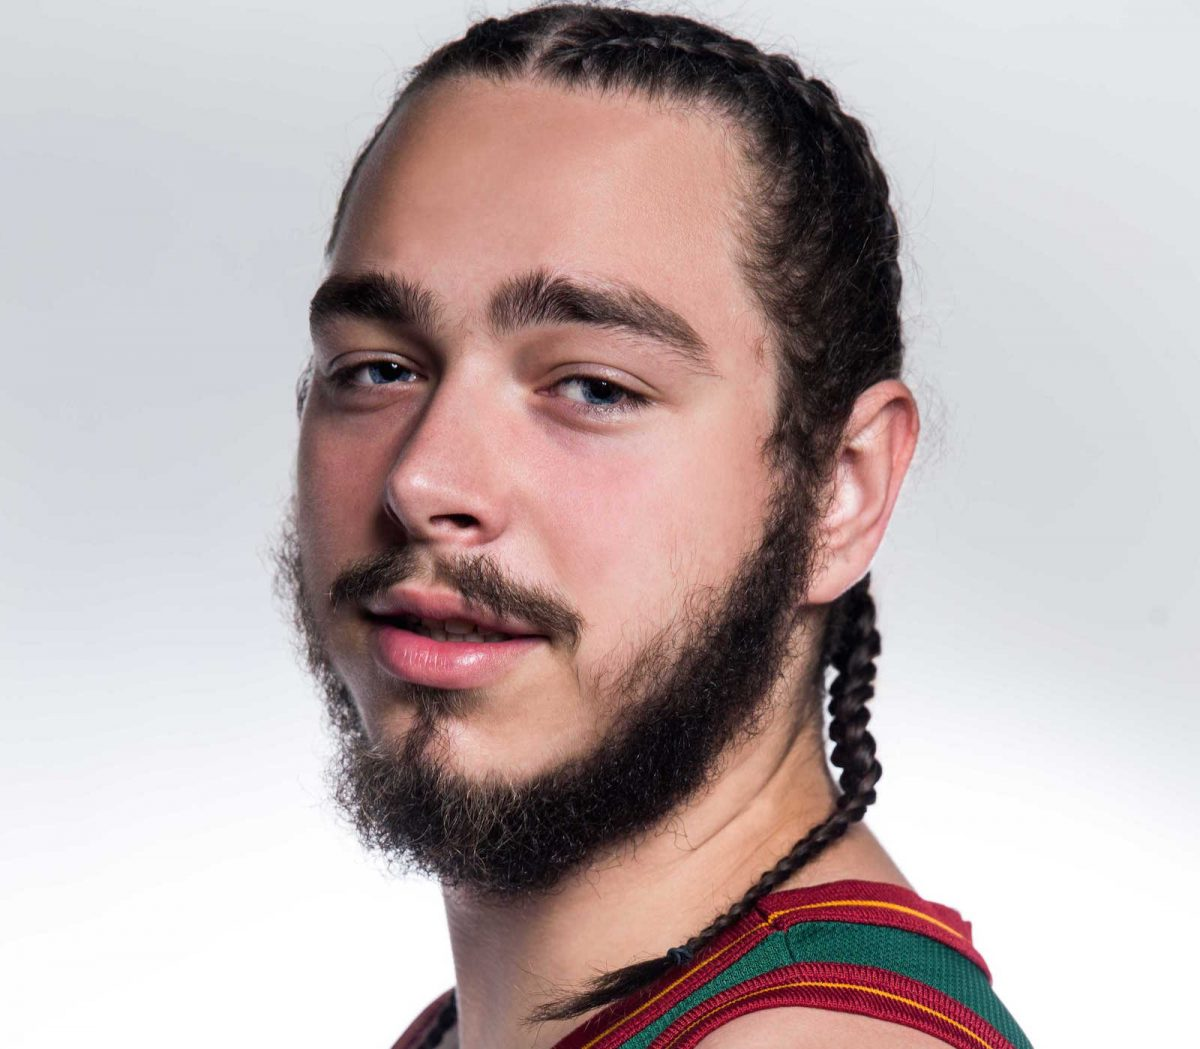 Post Malone Younger: Post Malone Agent Details